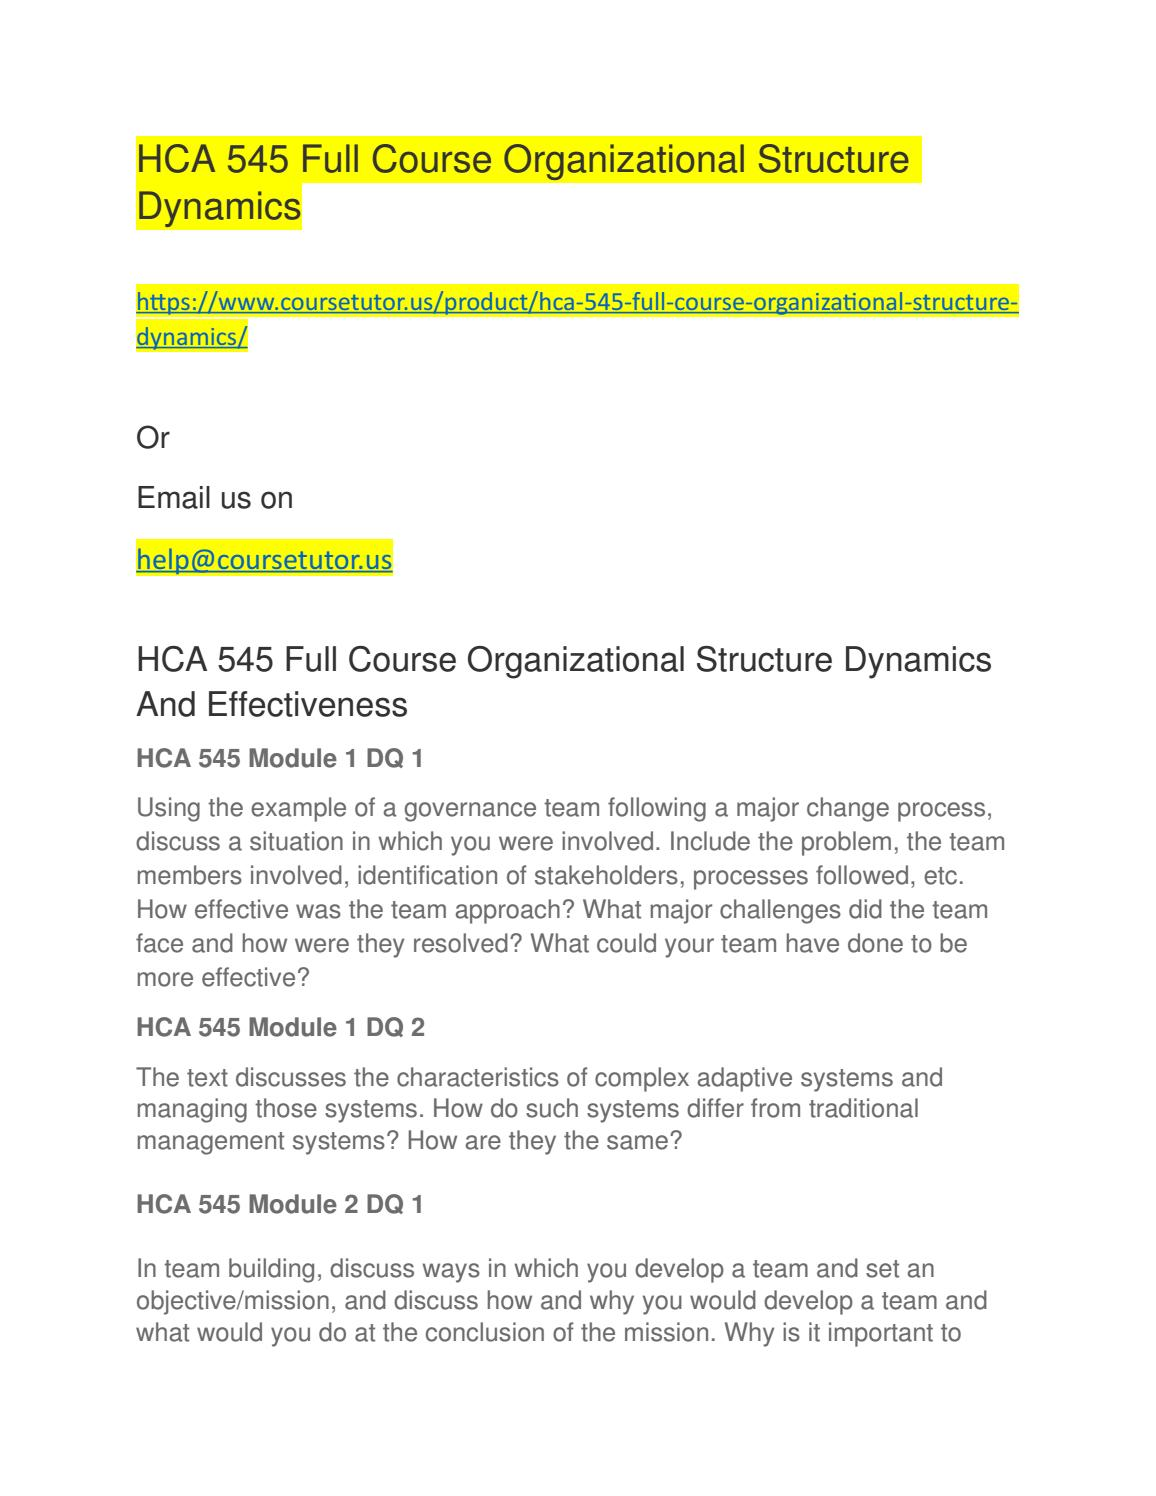 Hca 545 full course organizational structure dynamics by coursetutor